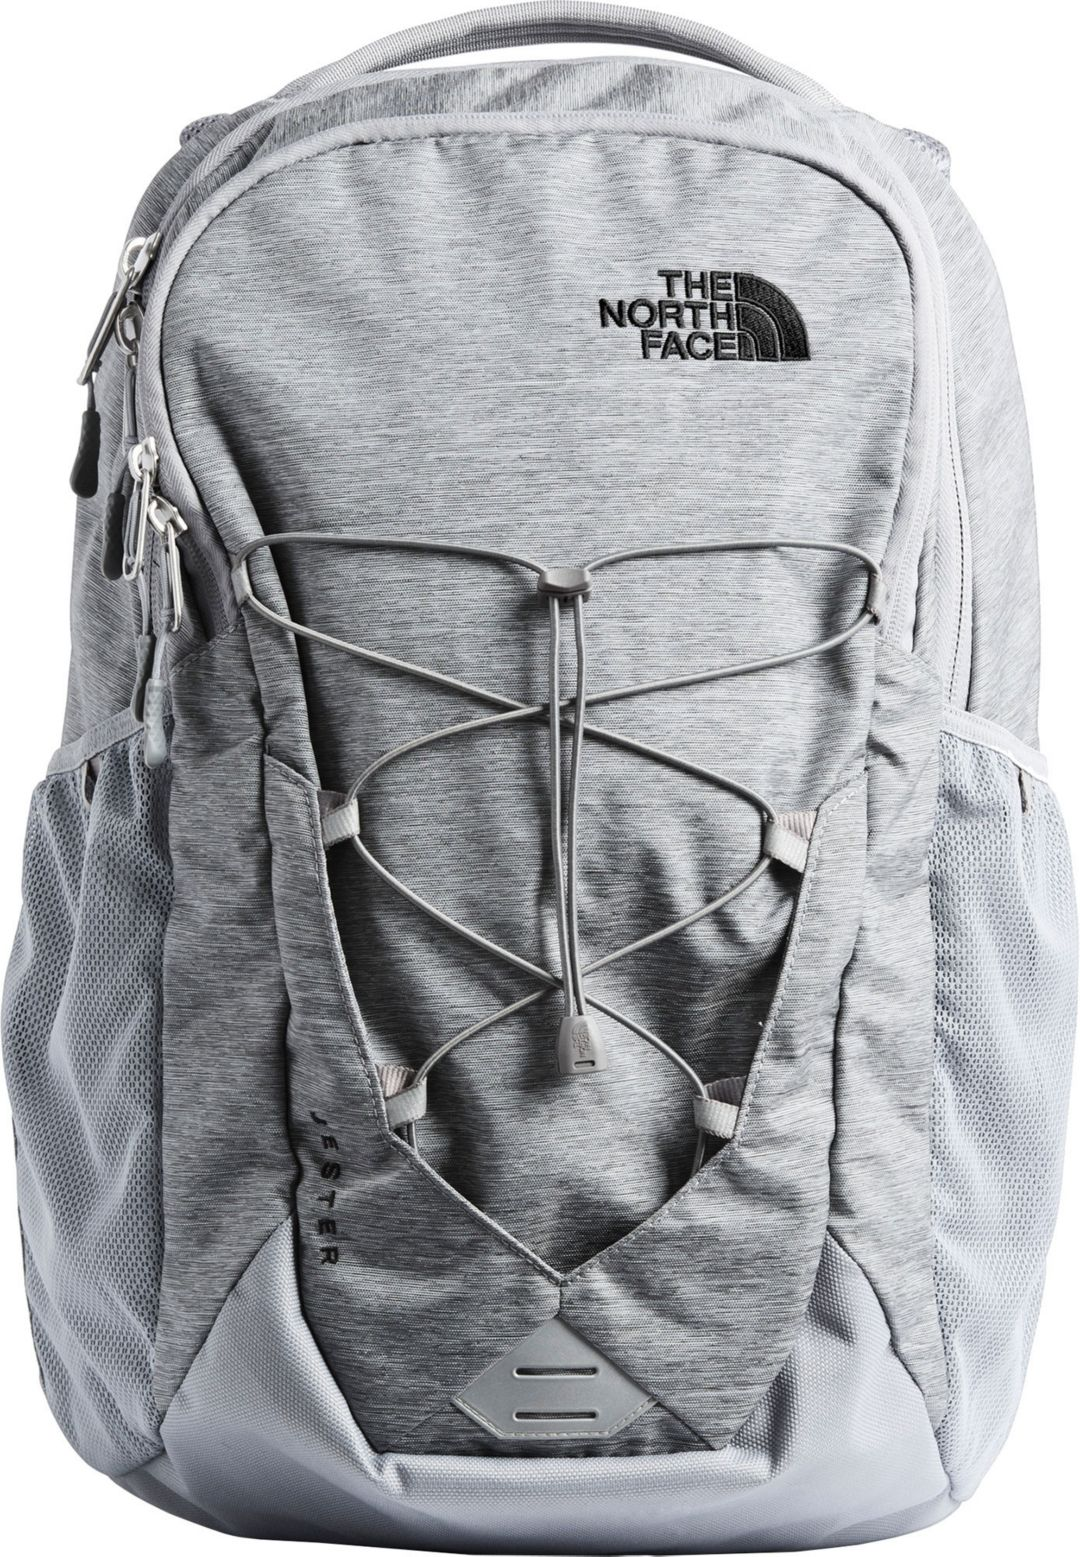 0f86fc51a The North Face Men's Jester Backpack